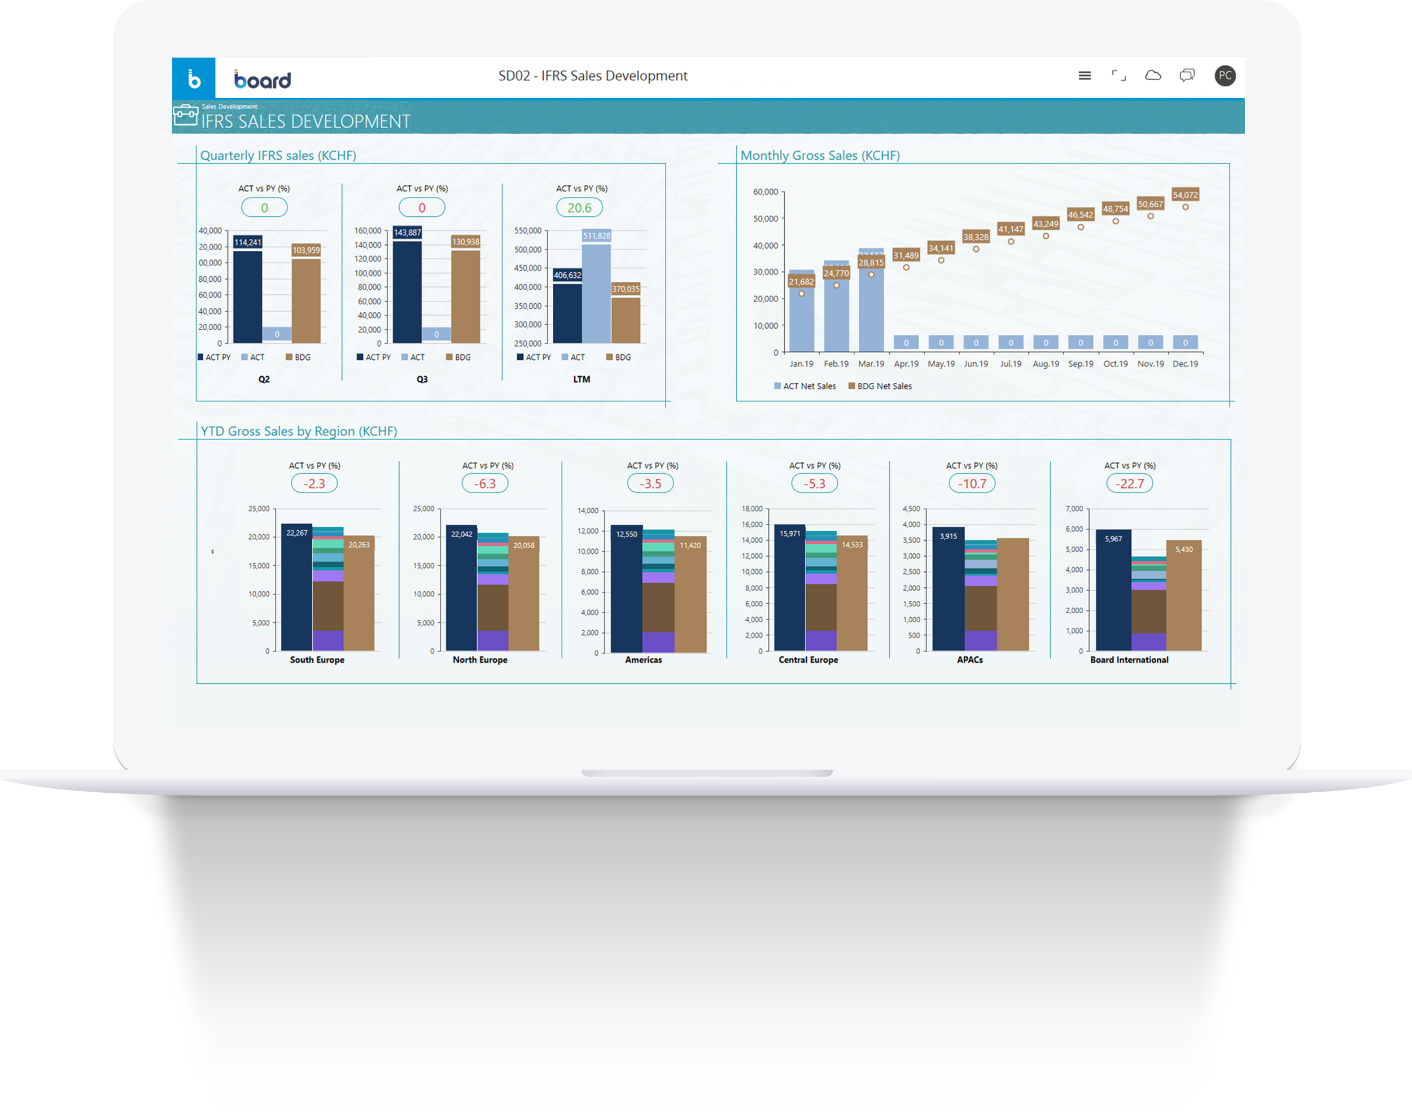 An example of IFRS sales development Board software dashboard